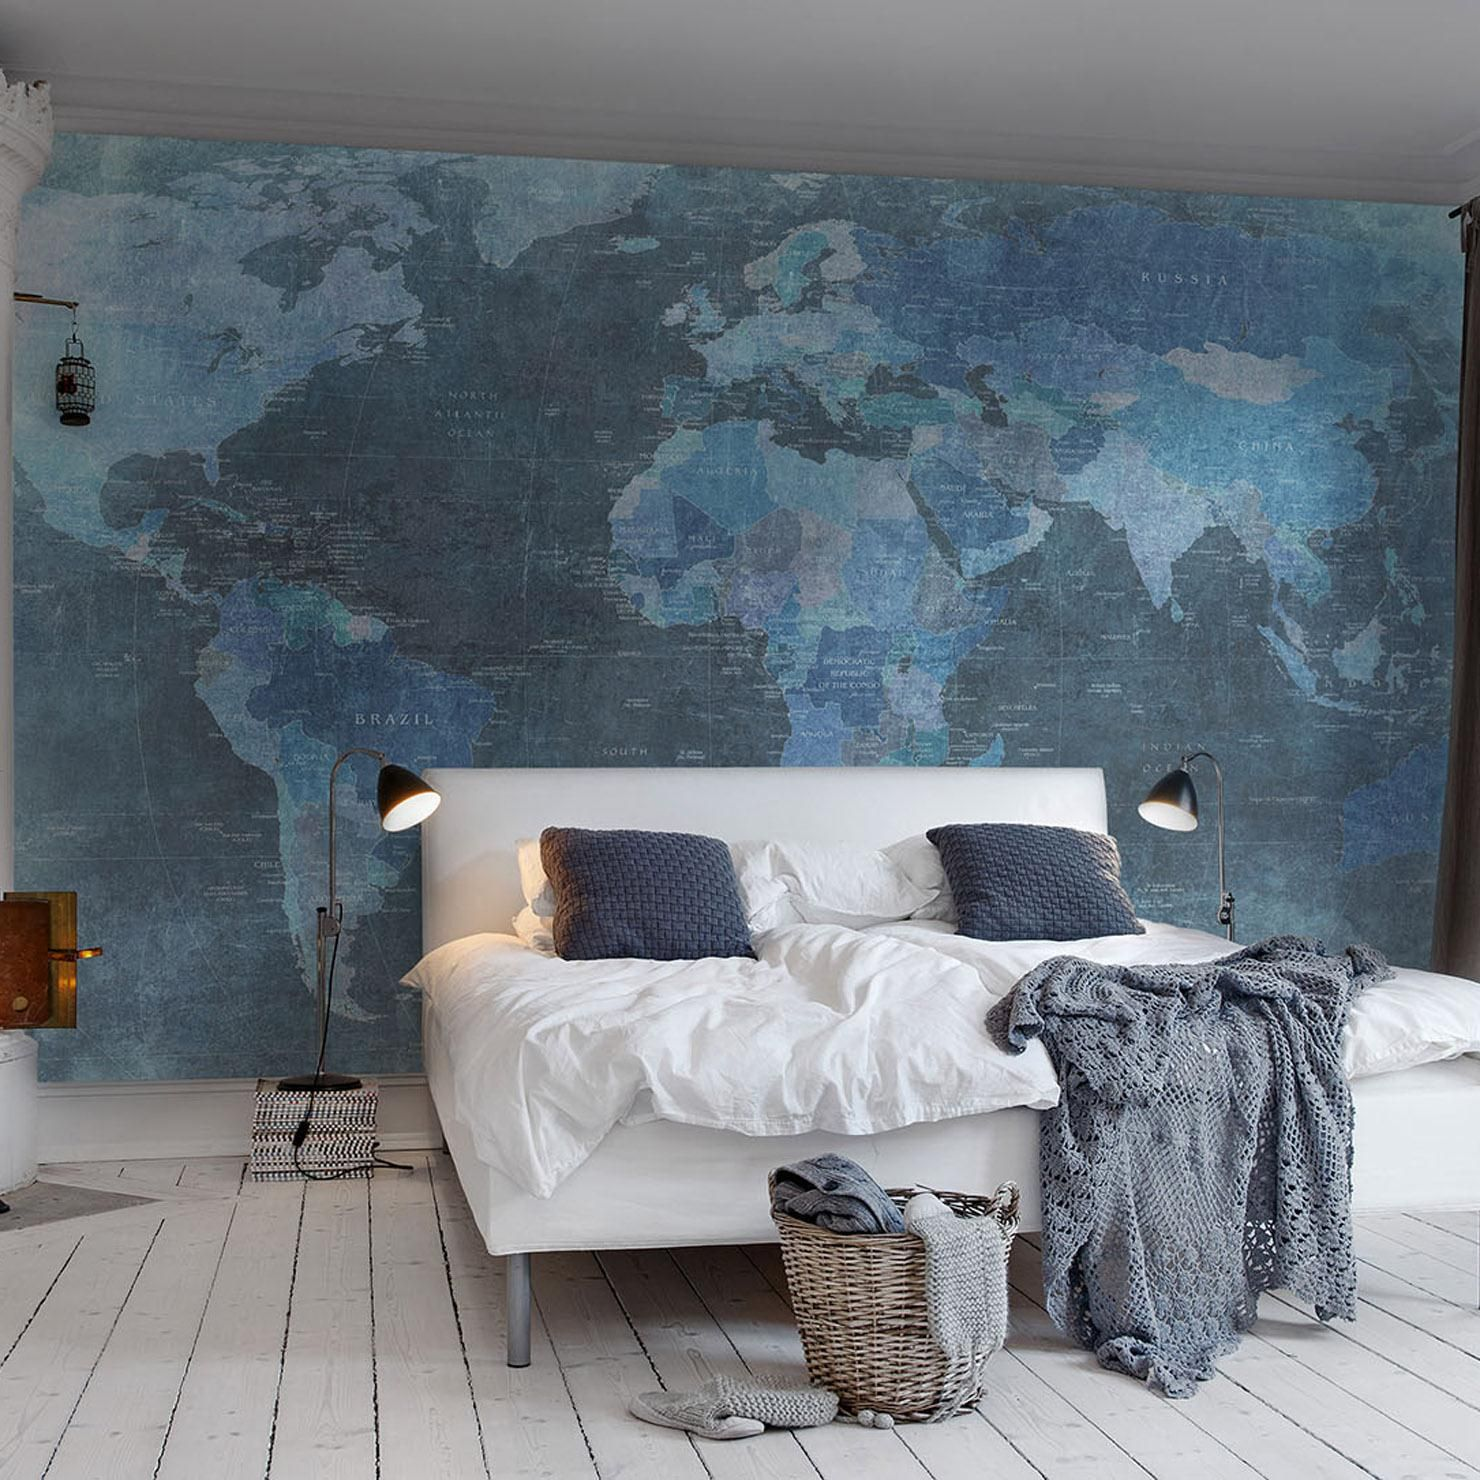 Awesome World Map Wallpaper Ideas for Bedroom